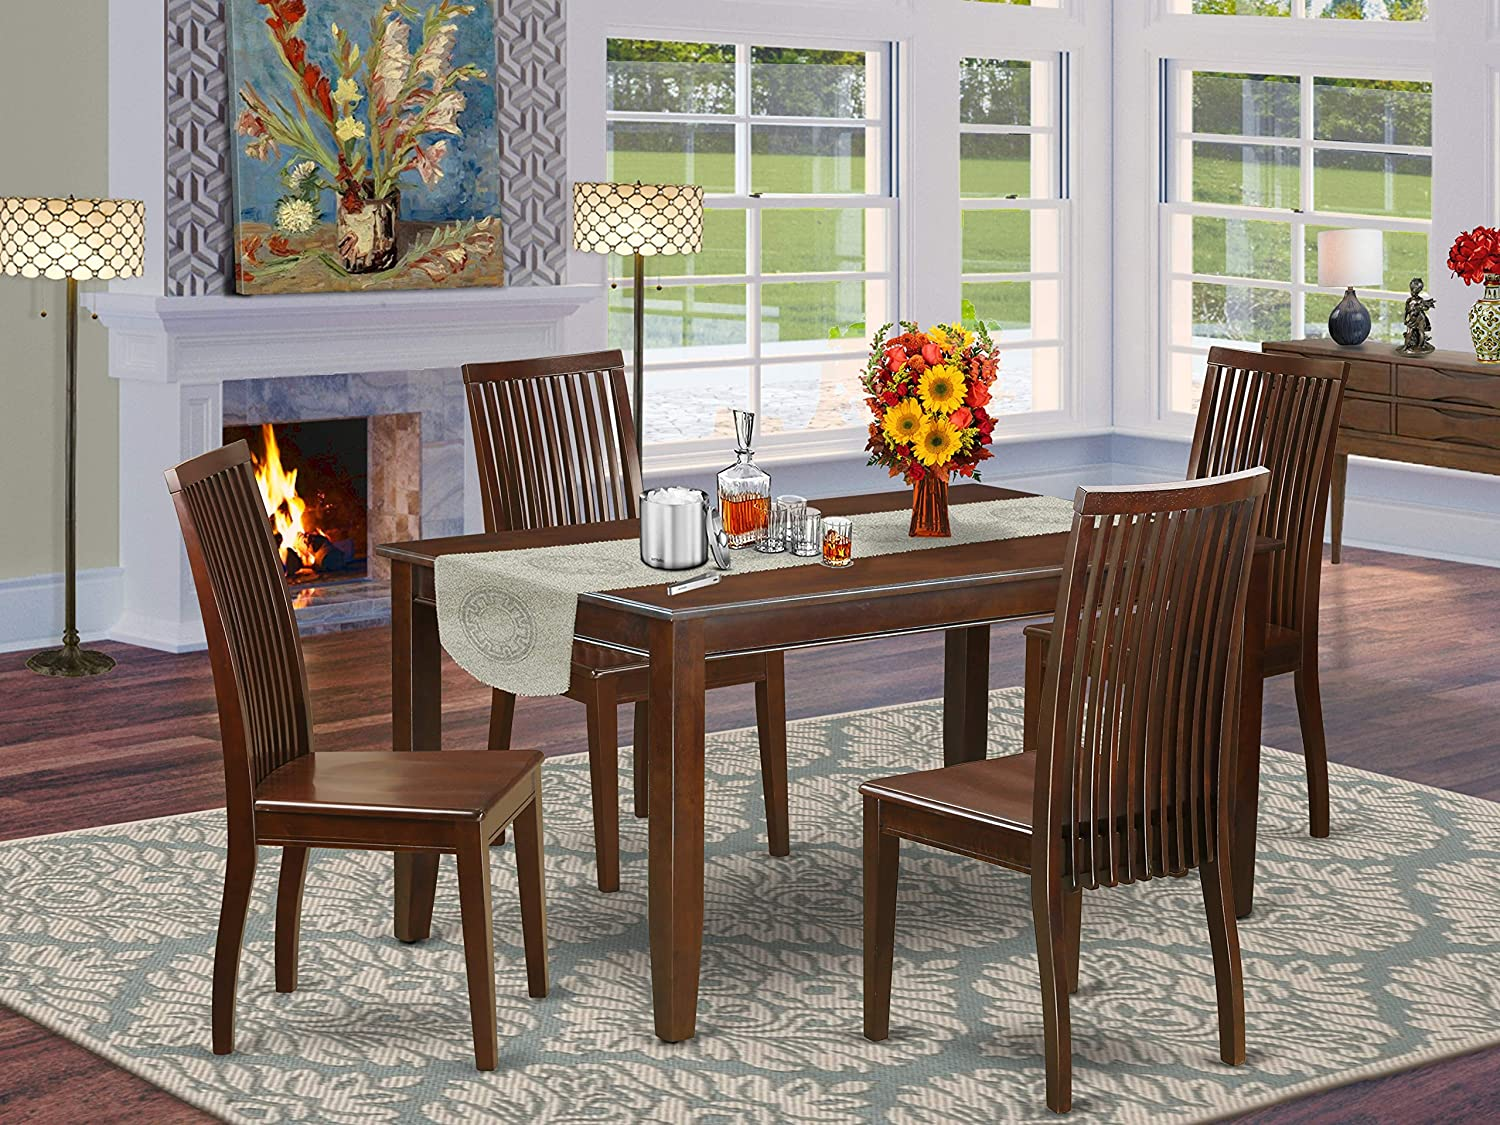 Super Special SALE held 5-Piece dinette set- -Table and chairs room 5 popular dining 4